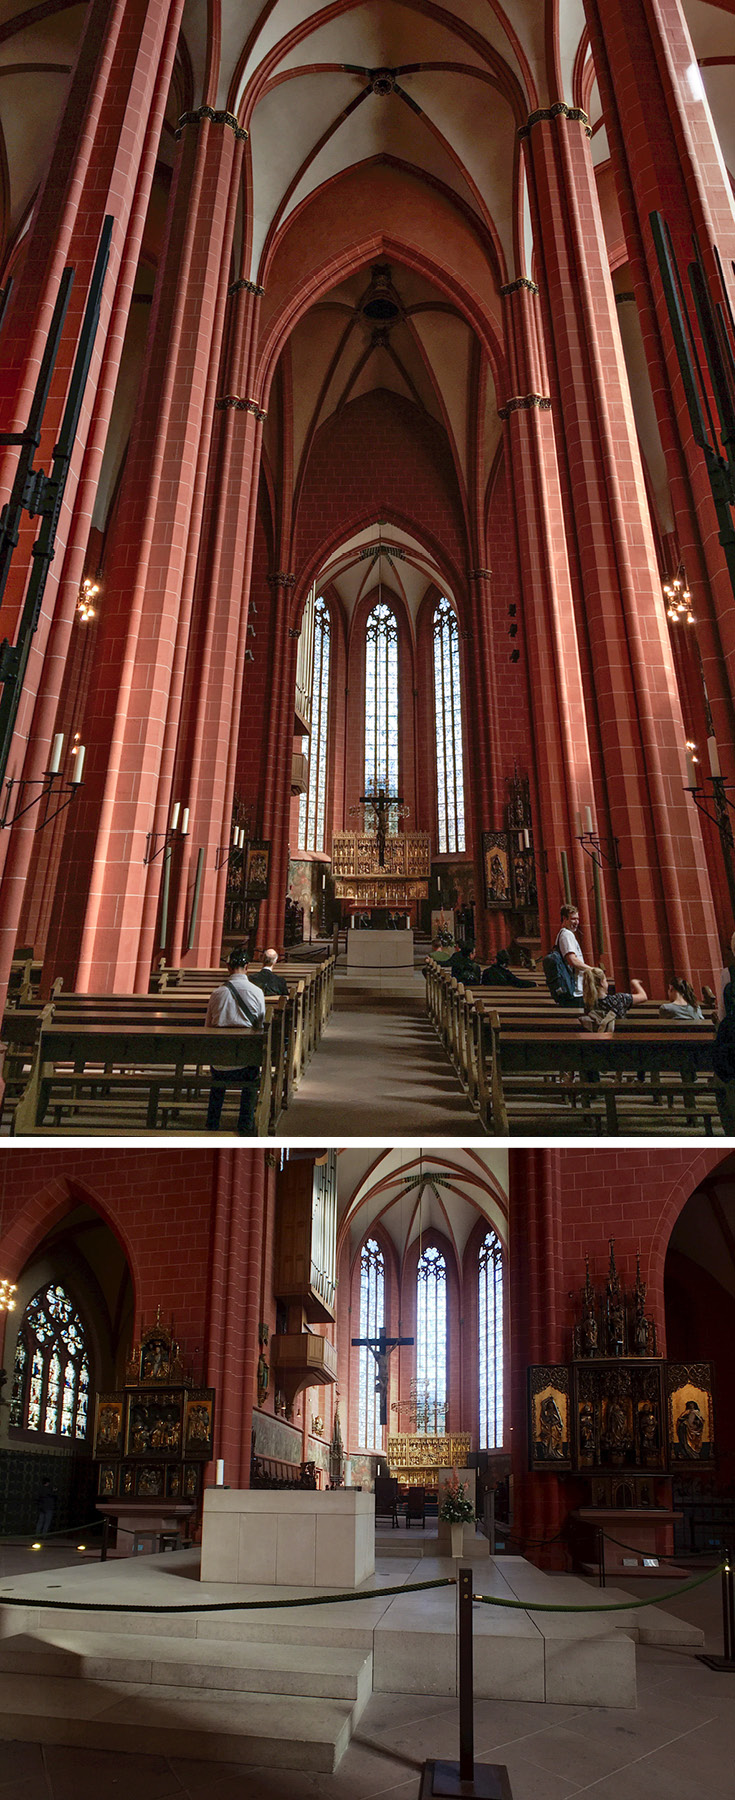 The red sandstone interior of St. Bartholomew's Imperial Cathedral in Frankfurt am Main, Germany